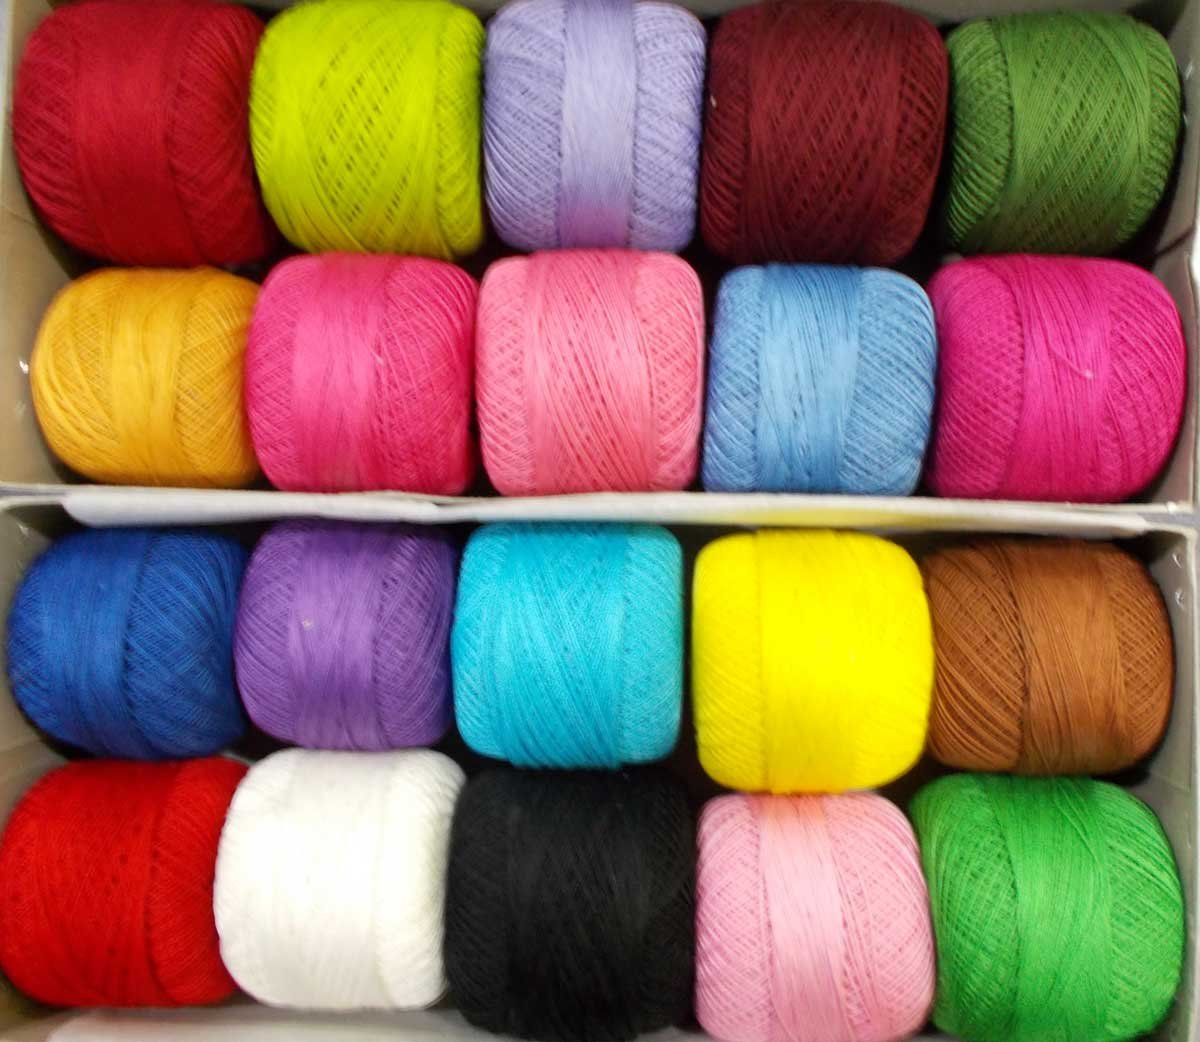 Skeins Lacey Craft Cotton Crochet 20 Pcs Yarn Cross Stitch Knitting Thread Tatting Doilies Assorted Colors